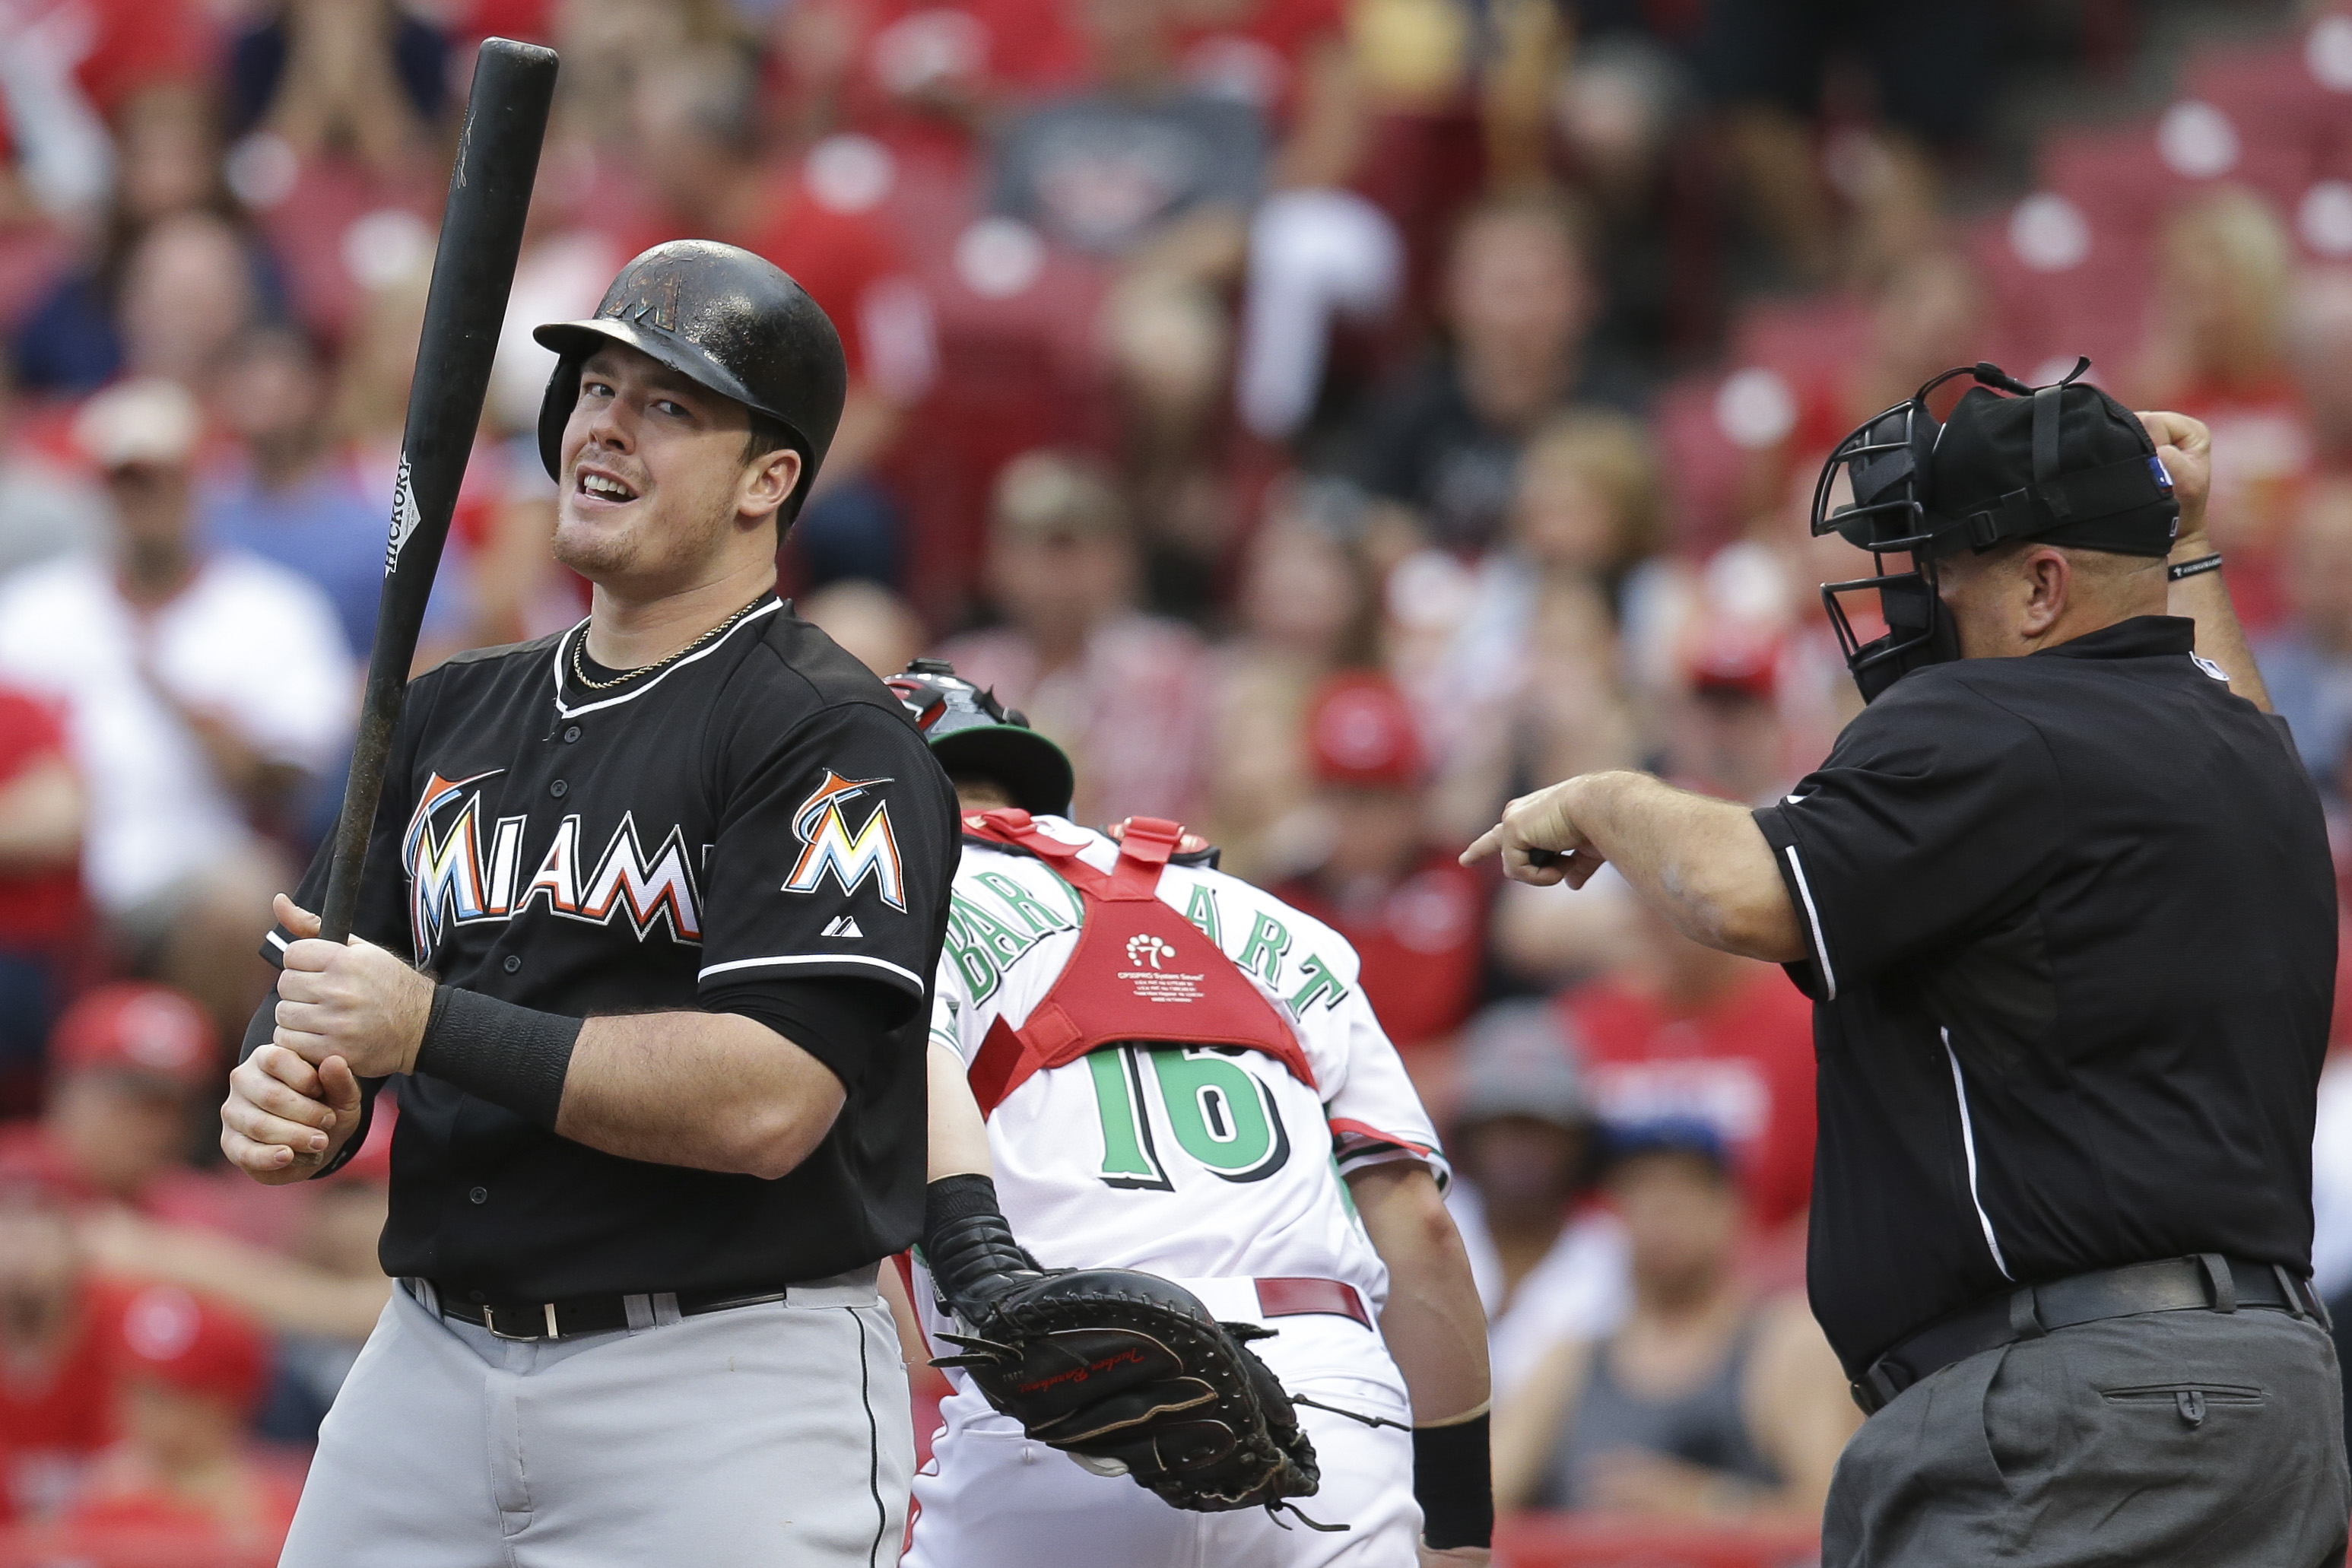 Miami Marlins first baseman Justin Bour reacts after striking out during the second inning of a baseball game against the Cincinnati Reds, Friday, June 19, 2015, in Cincinnati. (AP Photo/John Minchillo)